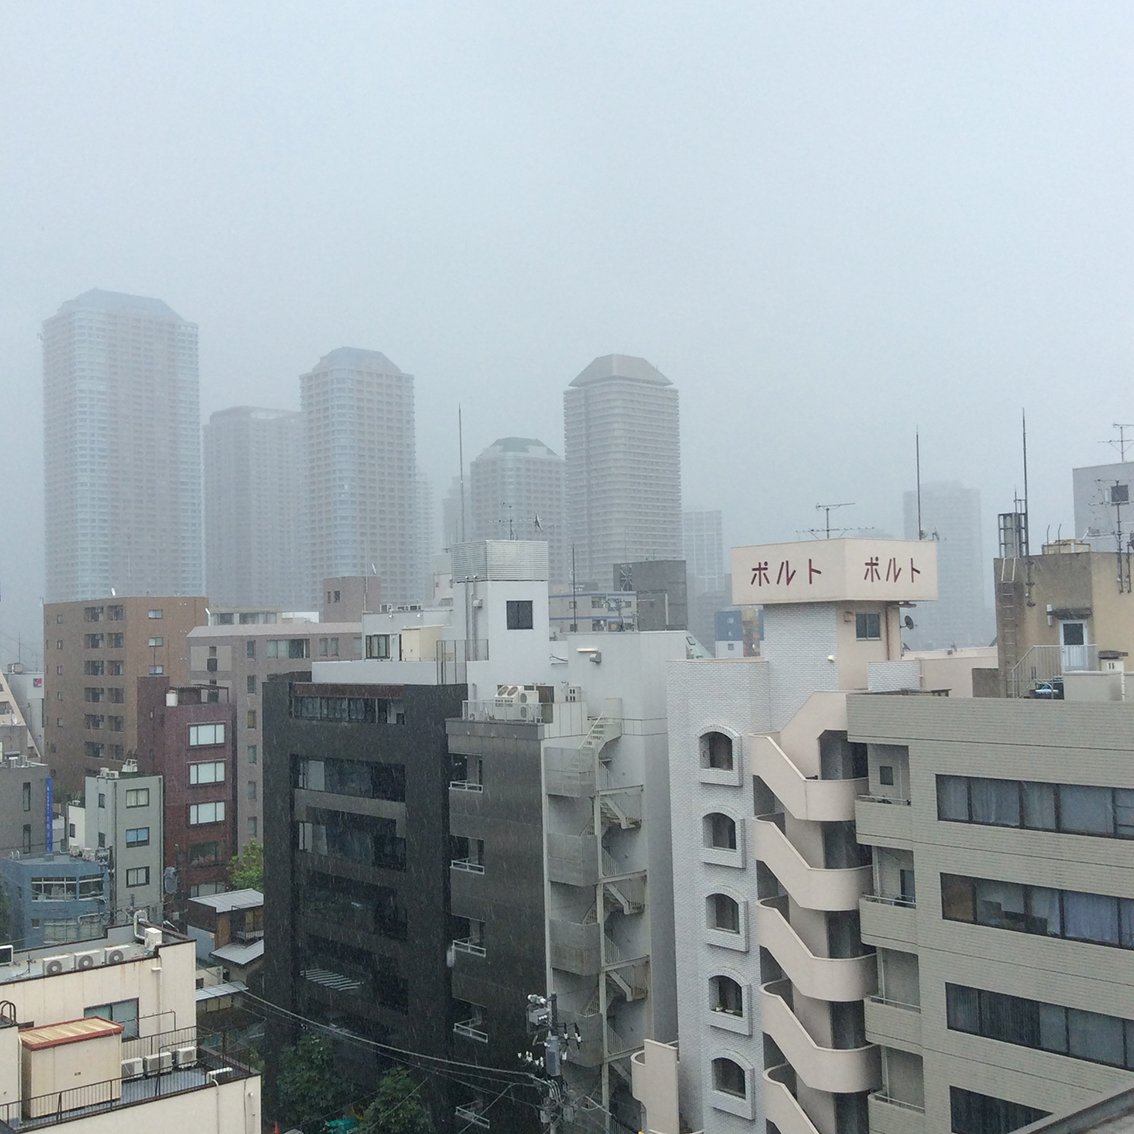 view over the tops of buildings disappearing into the low raincloud over Tokyo